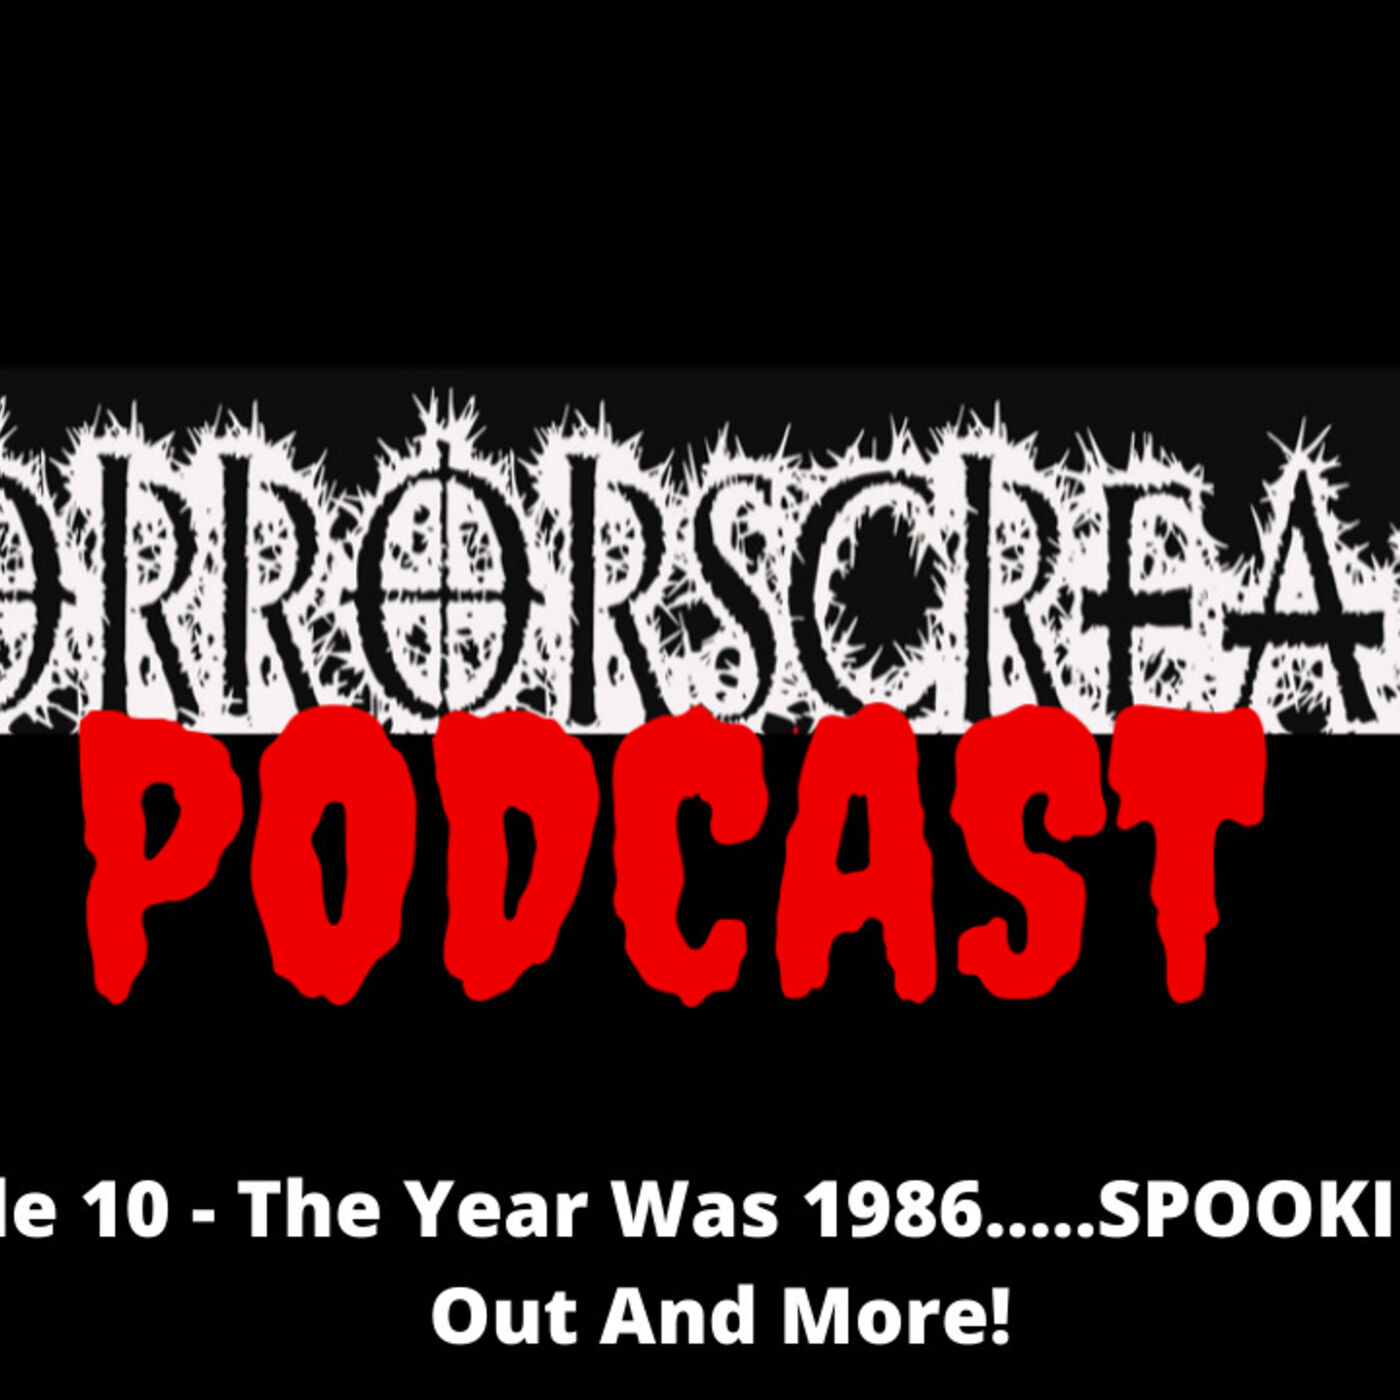 HORRORSCREAMS PODCAST: Episode 10 - The Year Was 1986.....SPOOKIES Came Out And More!